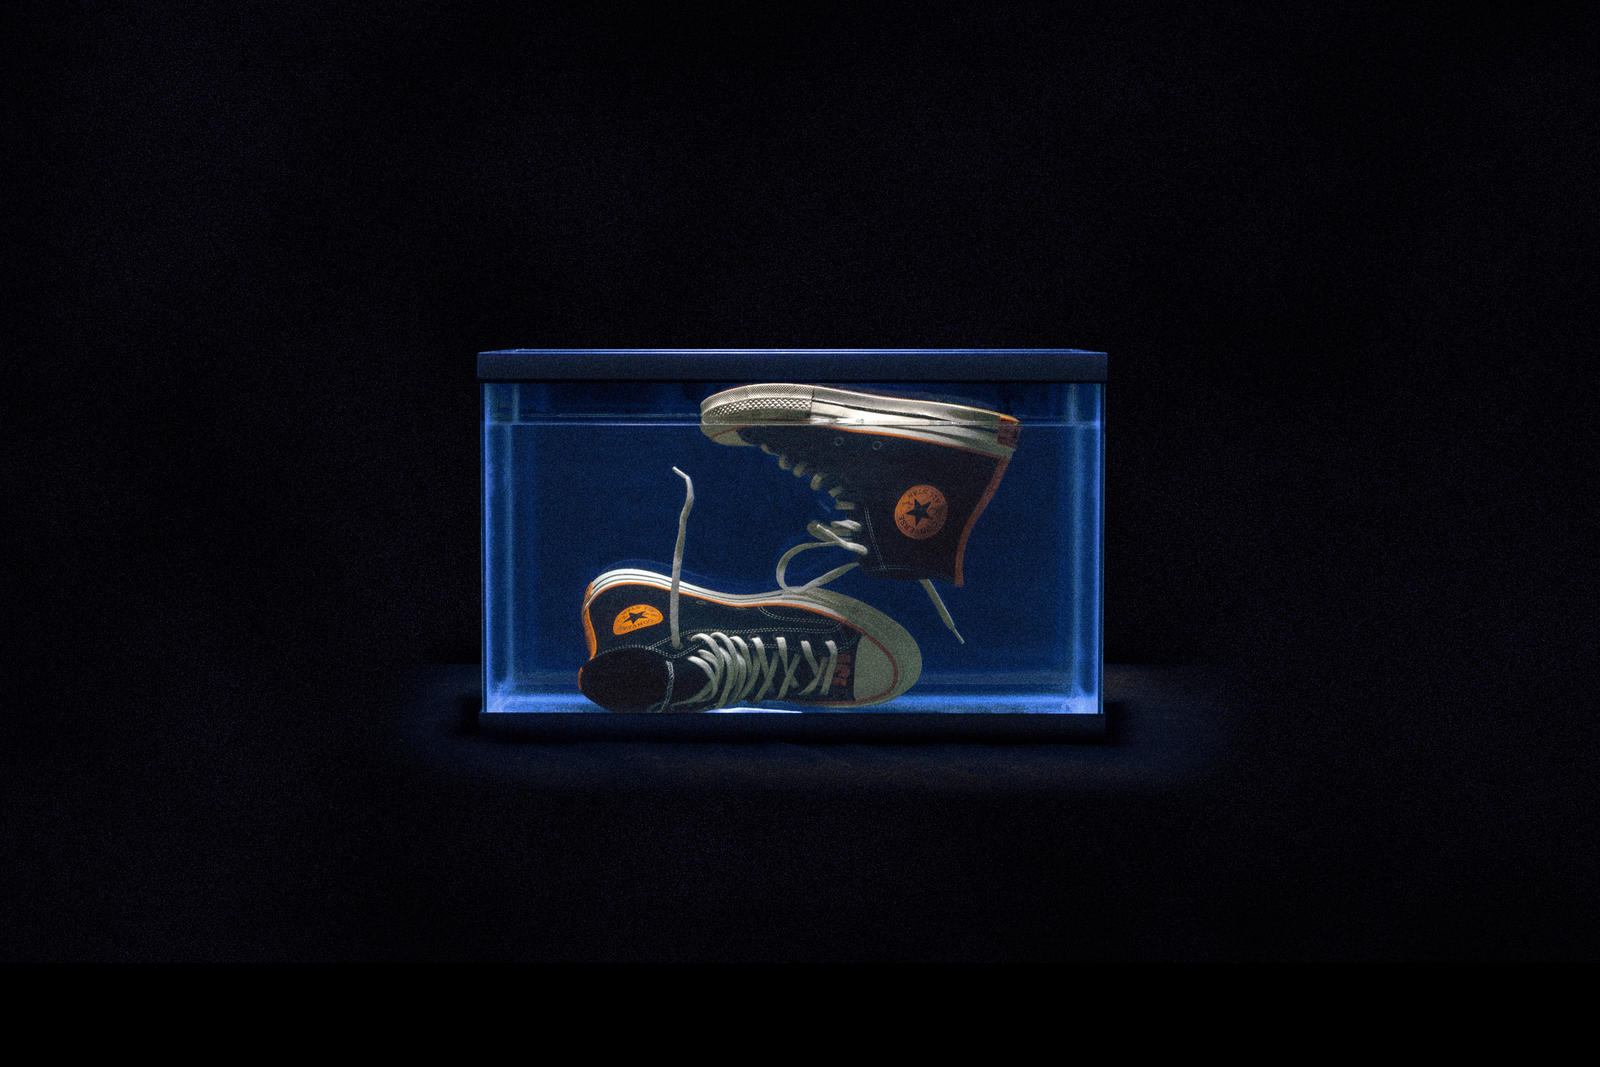 Converse Celebrates Vince Staples' Album, Big Fish Theory 0